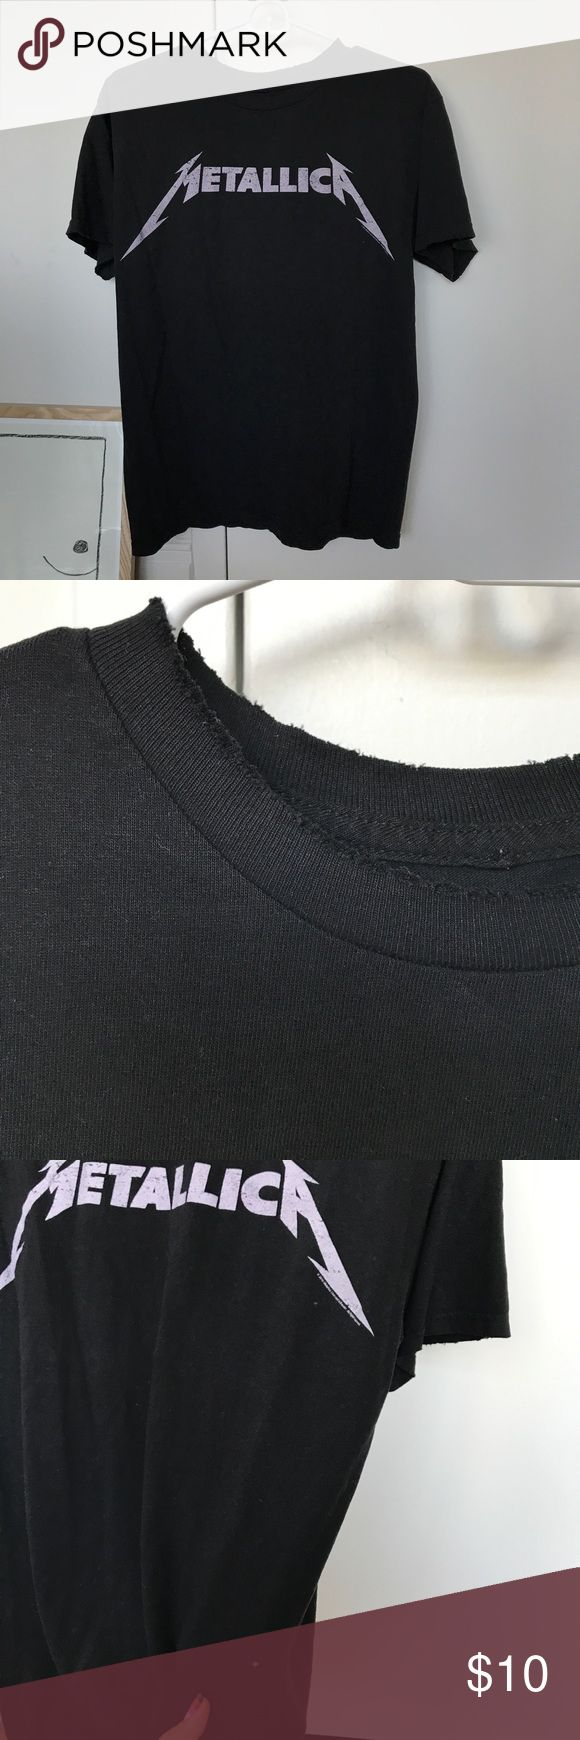 Brandy Melville Metallica shirt Distressed Metallica shirt. There is a hole in the shirt on the front (came like that). Sleeves and collar is also distressed. SUPER CUTE! (Could turn it into a cute rock band Halloween costume)  Brandy Melville Tops Tees - Short Sleeve